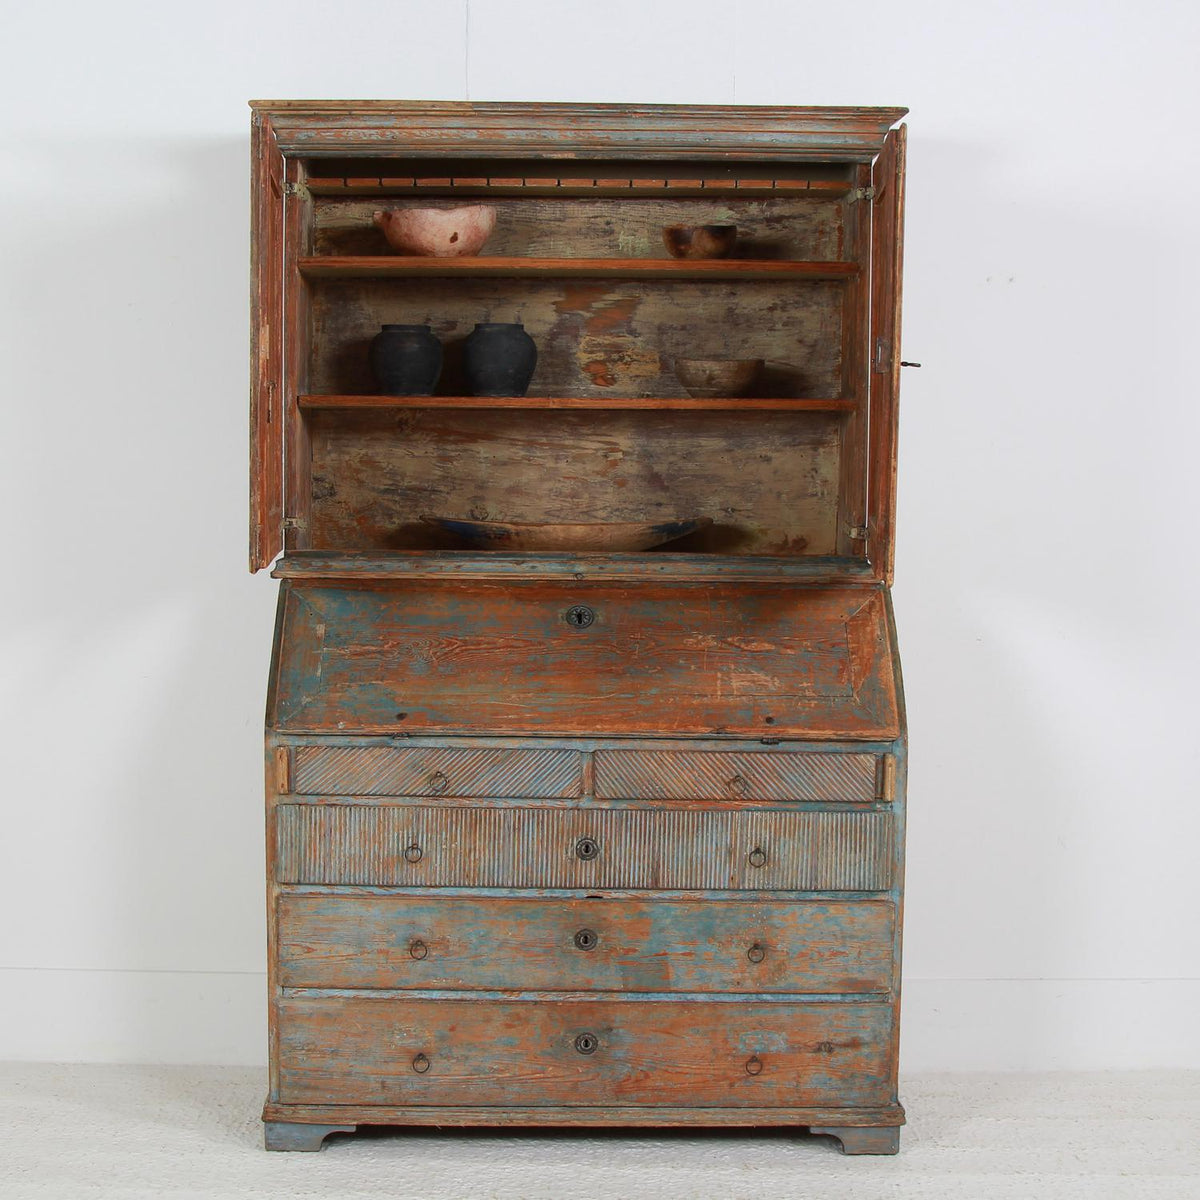 Swedish  Period  19thC Gustavian Painted Secretaire